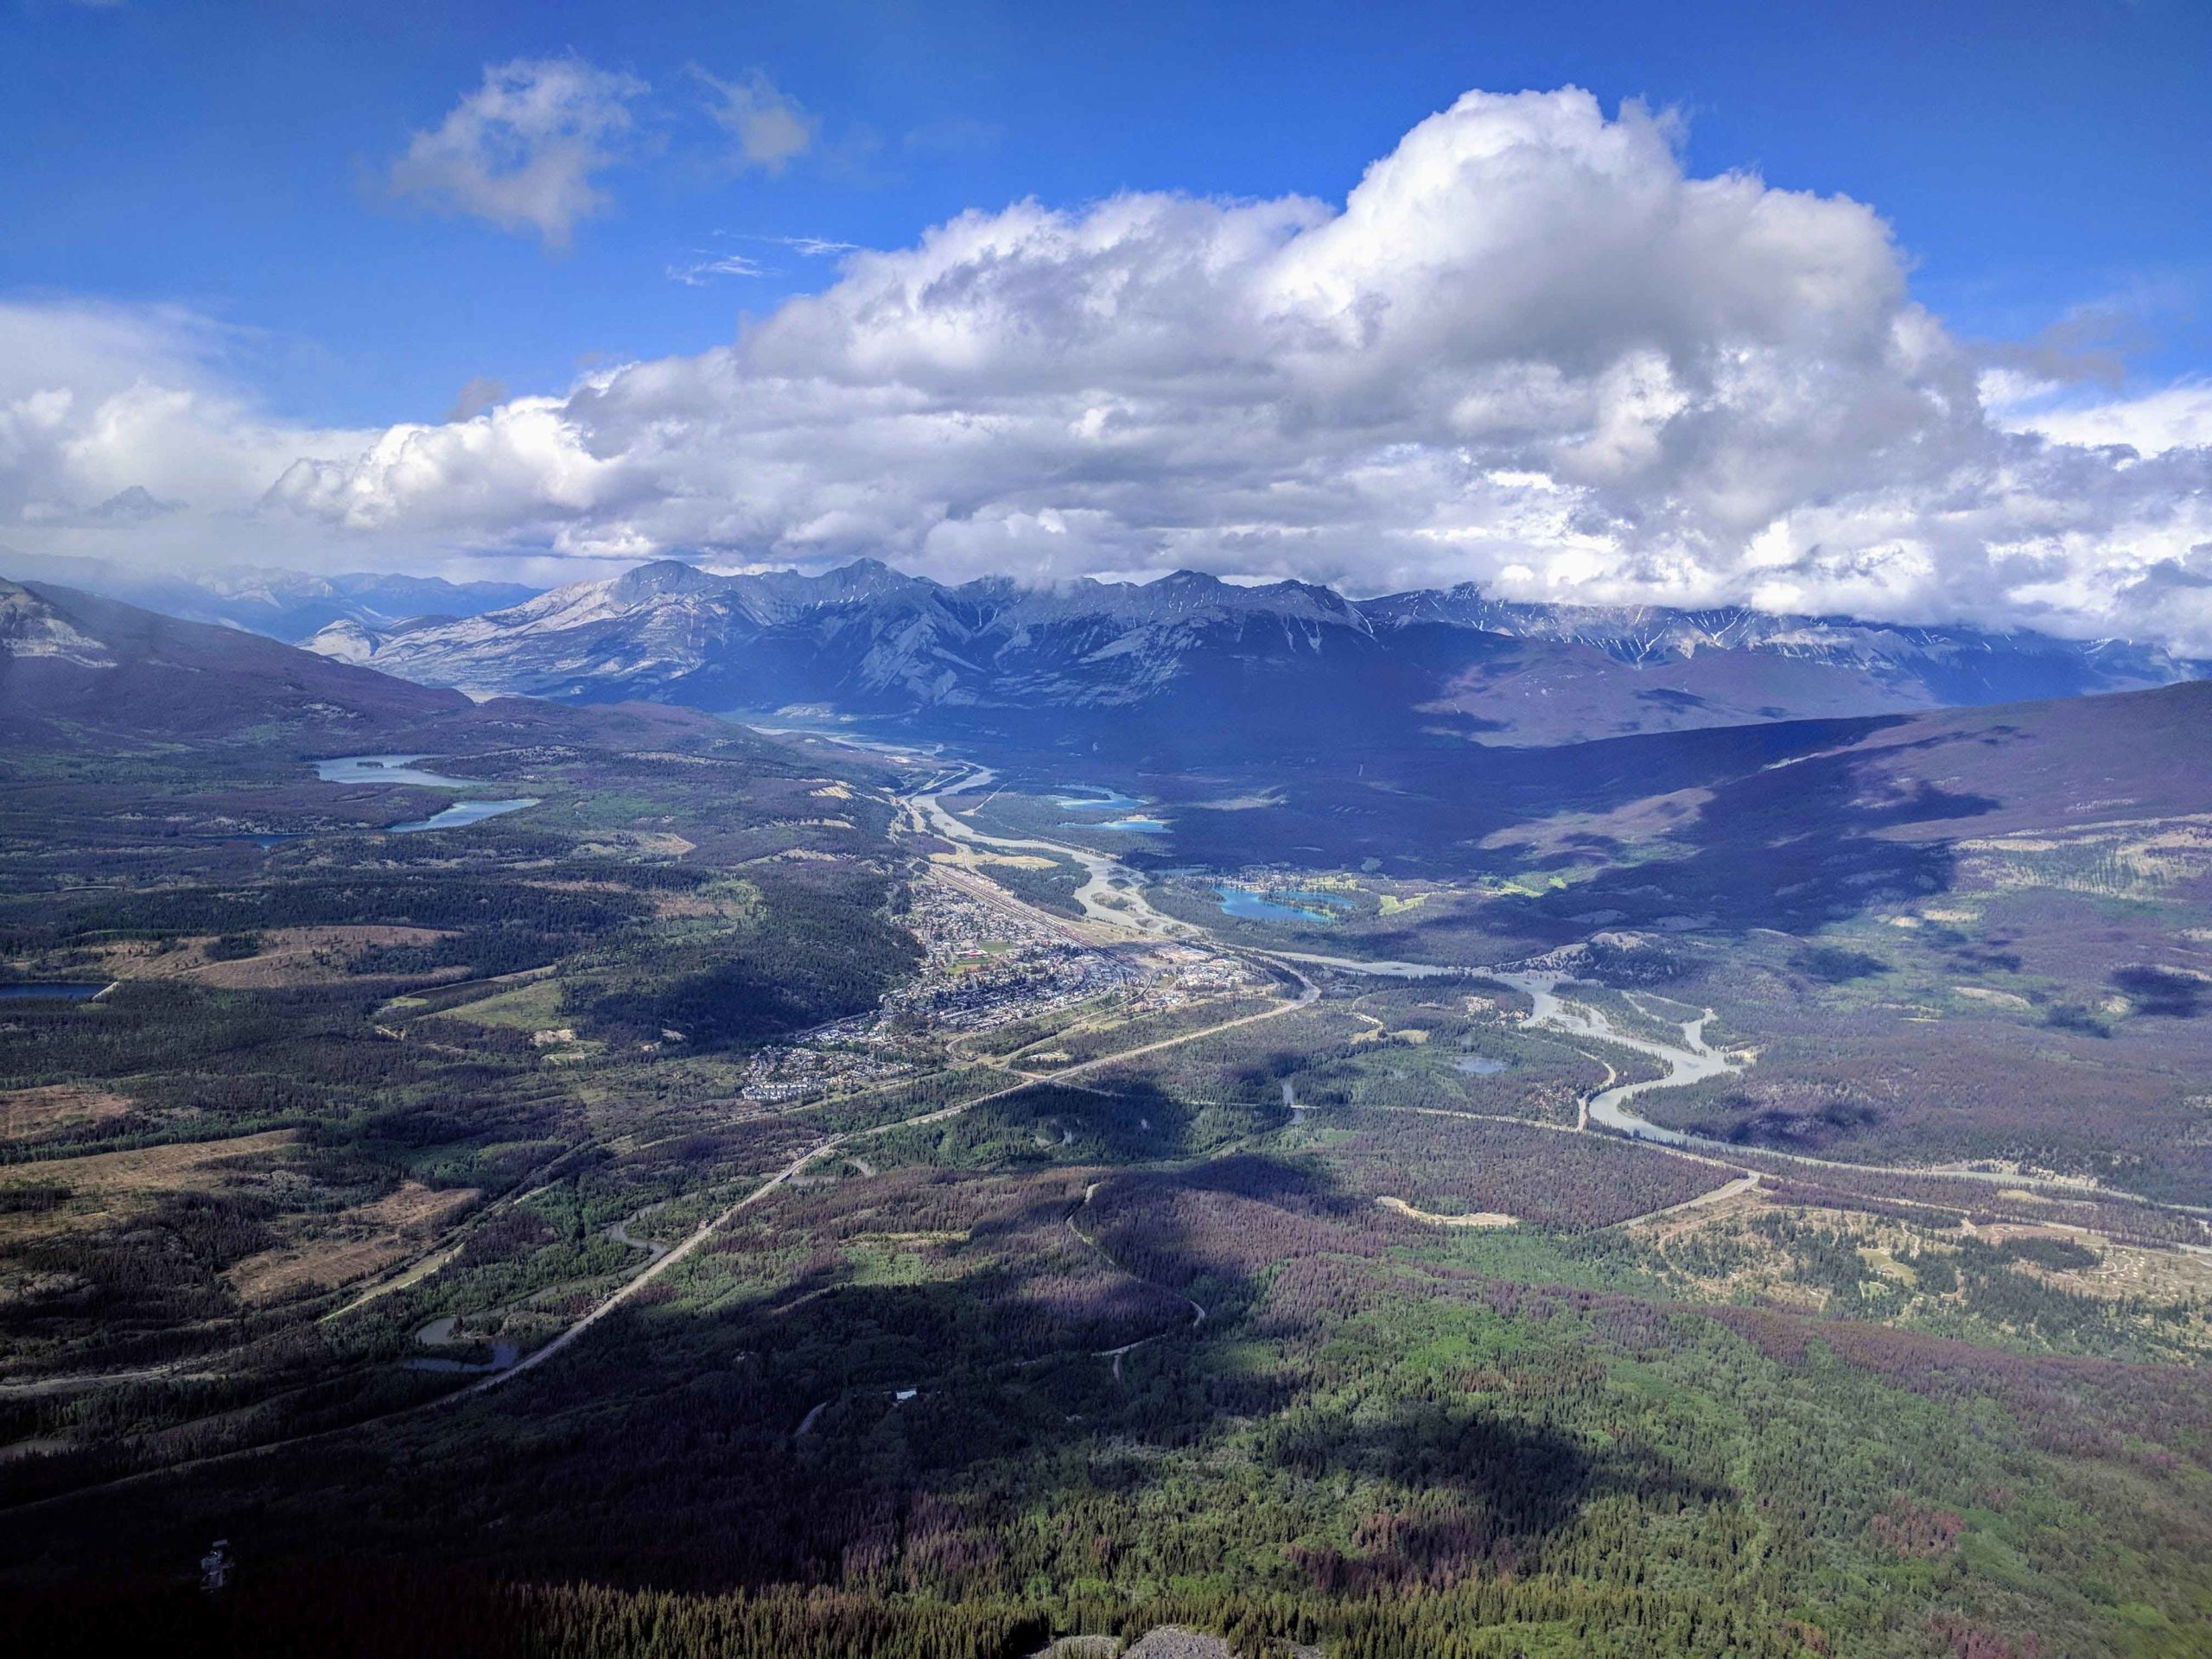 Looking down at the town of Jasper from the top of Whistler's Mountain